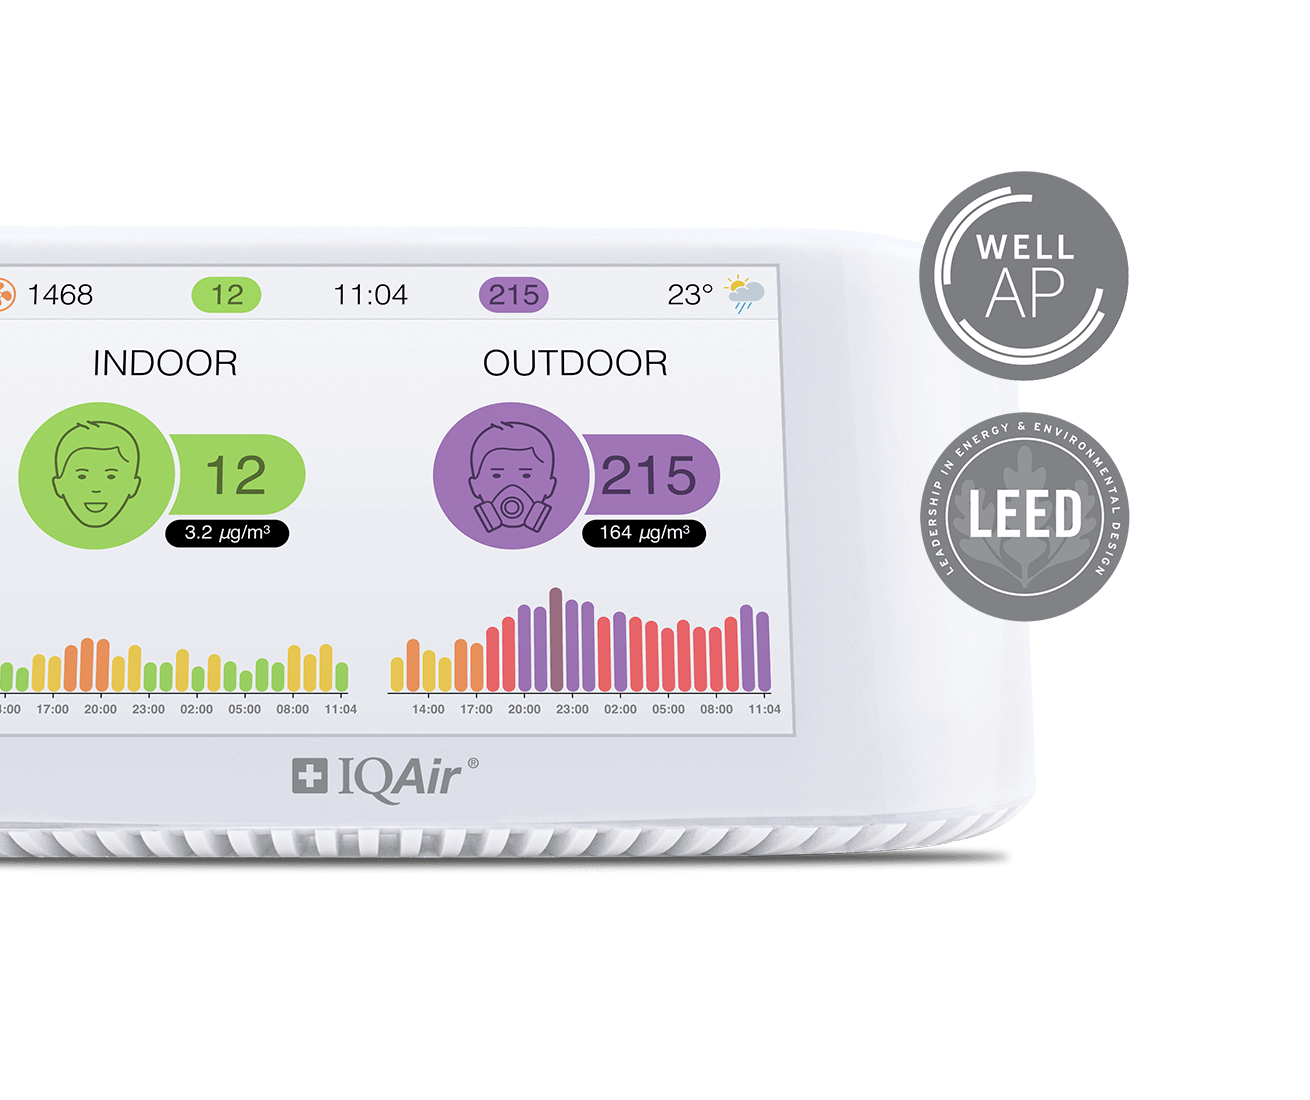 Air quality monitor AirVisual Pro